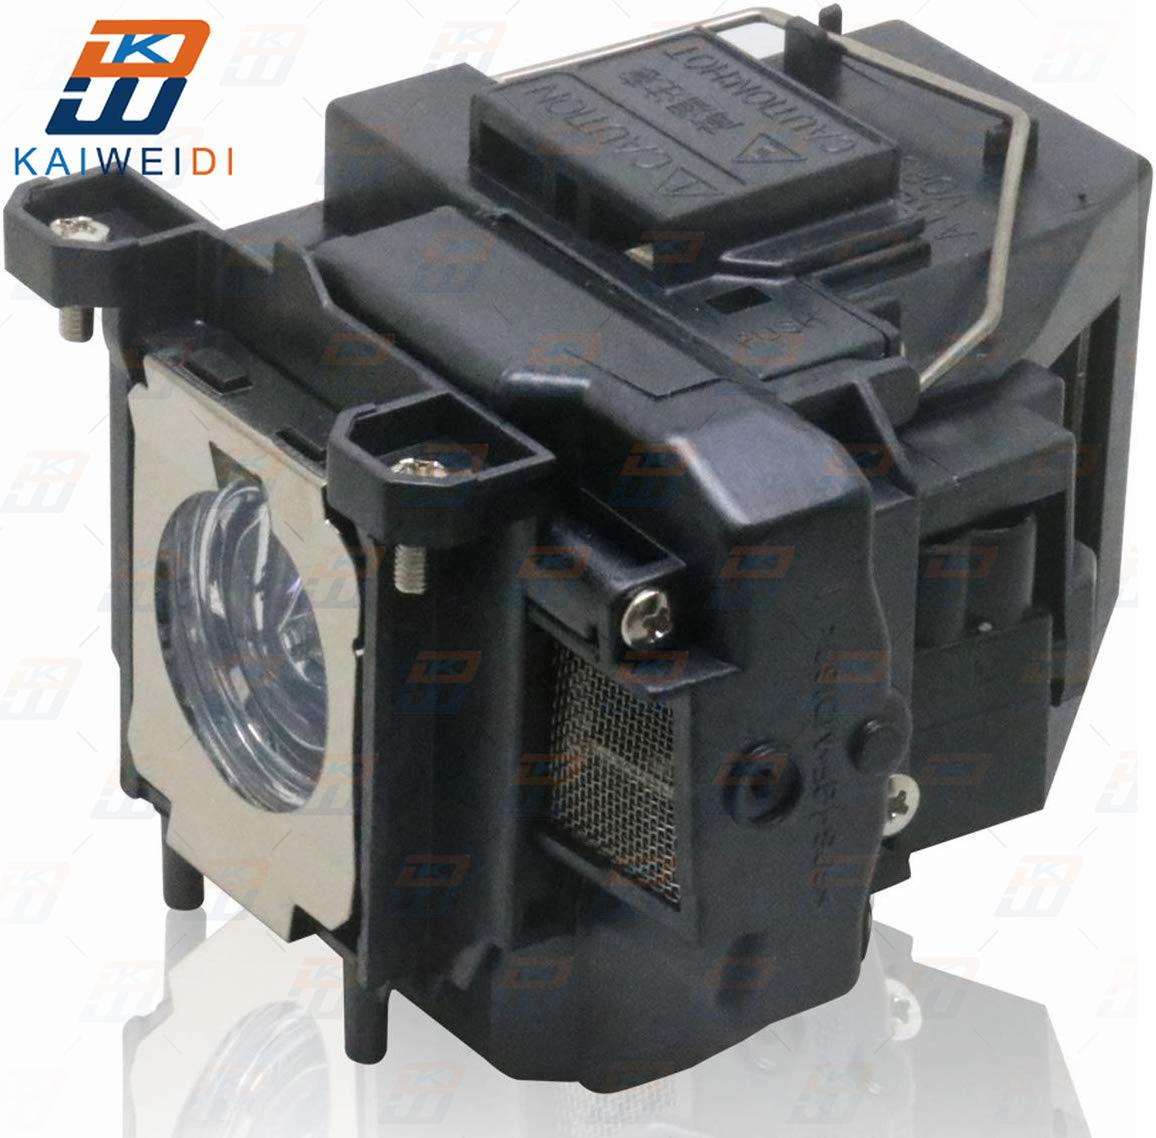 EB-S02 EB-S11 EB-S12 EB-W12 EB-W16 EB-X02 EB-X12 EB-X14 EB-X14G EH-TW550 EX3210 H494C Projector Lamp For ELPL67 For EPSON